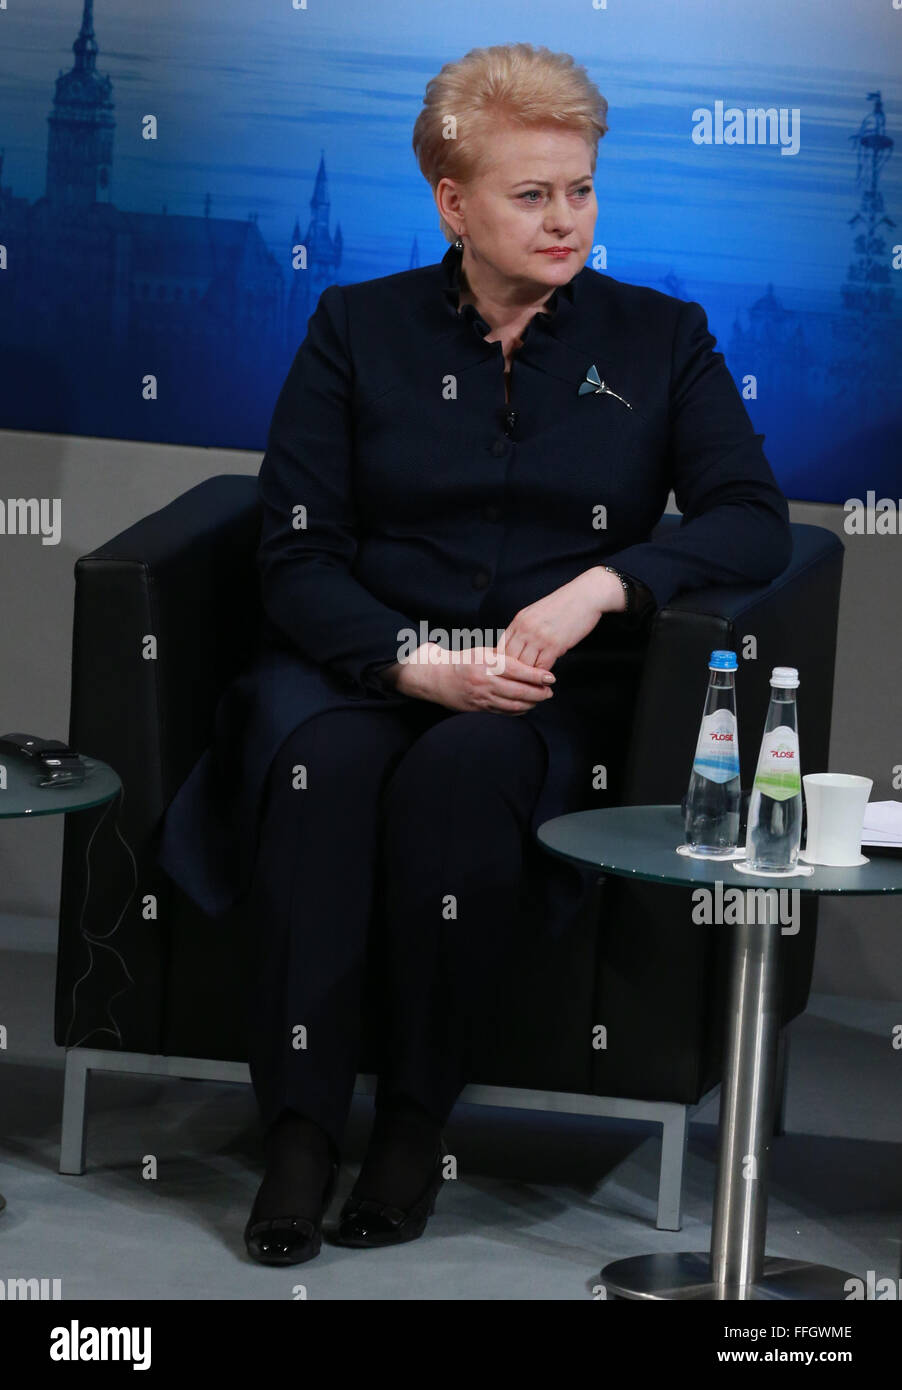 Munich, Germany. 13th Feb, 2016. Lithuanian President Dalia Grybauskaite attends the Munich Security Conference(MSC) - Stock Image